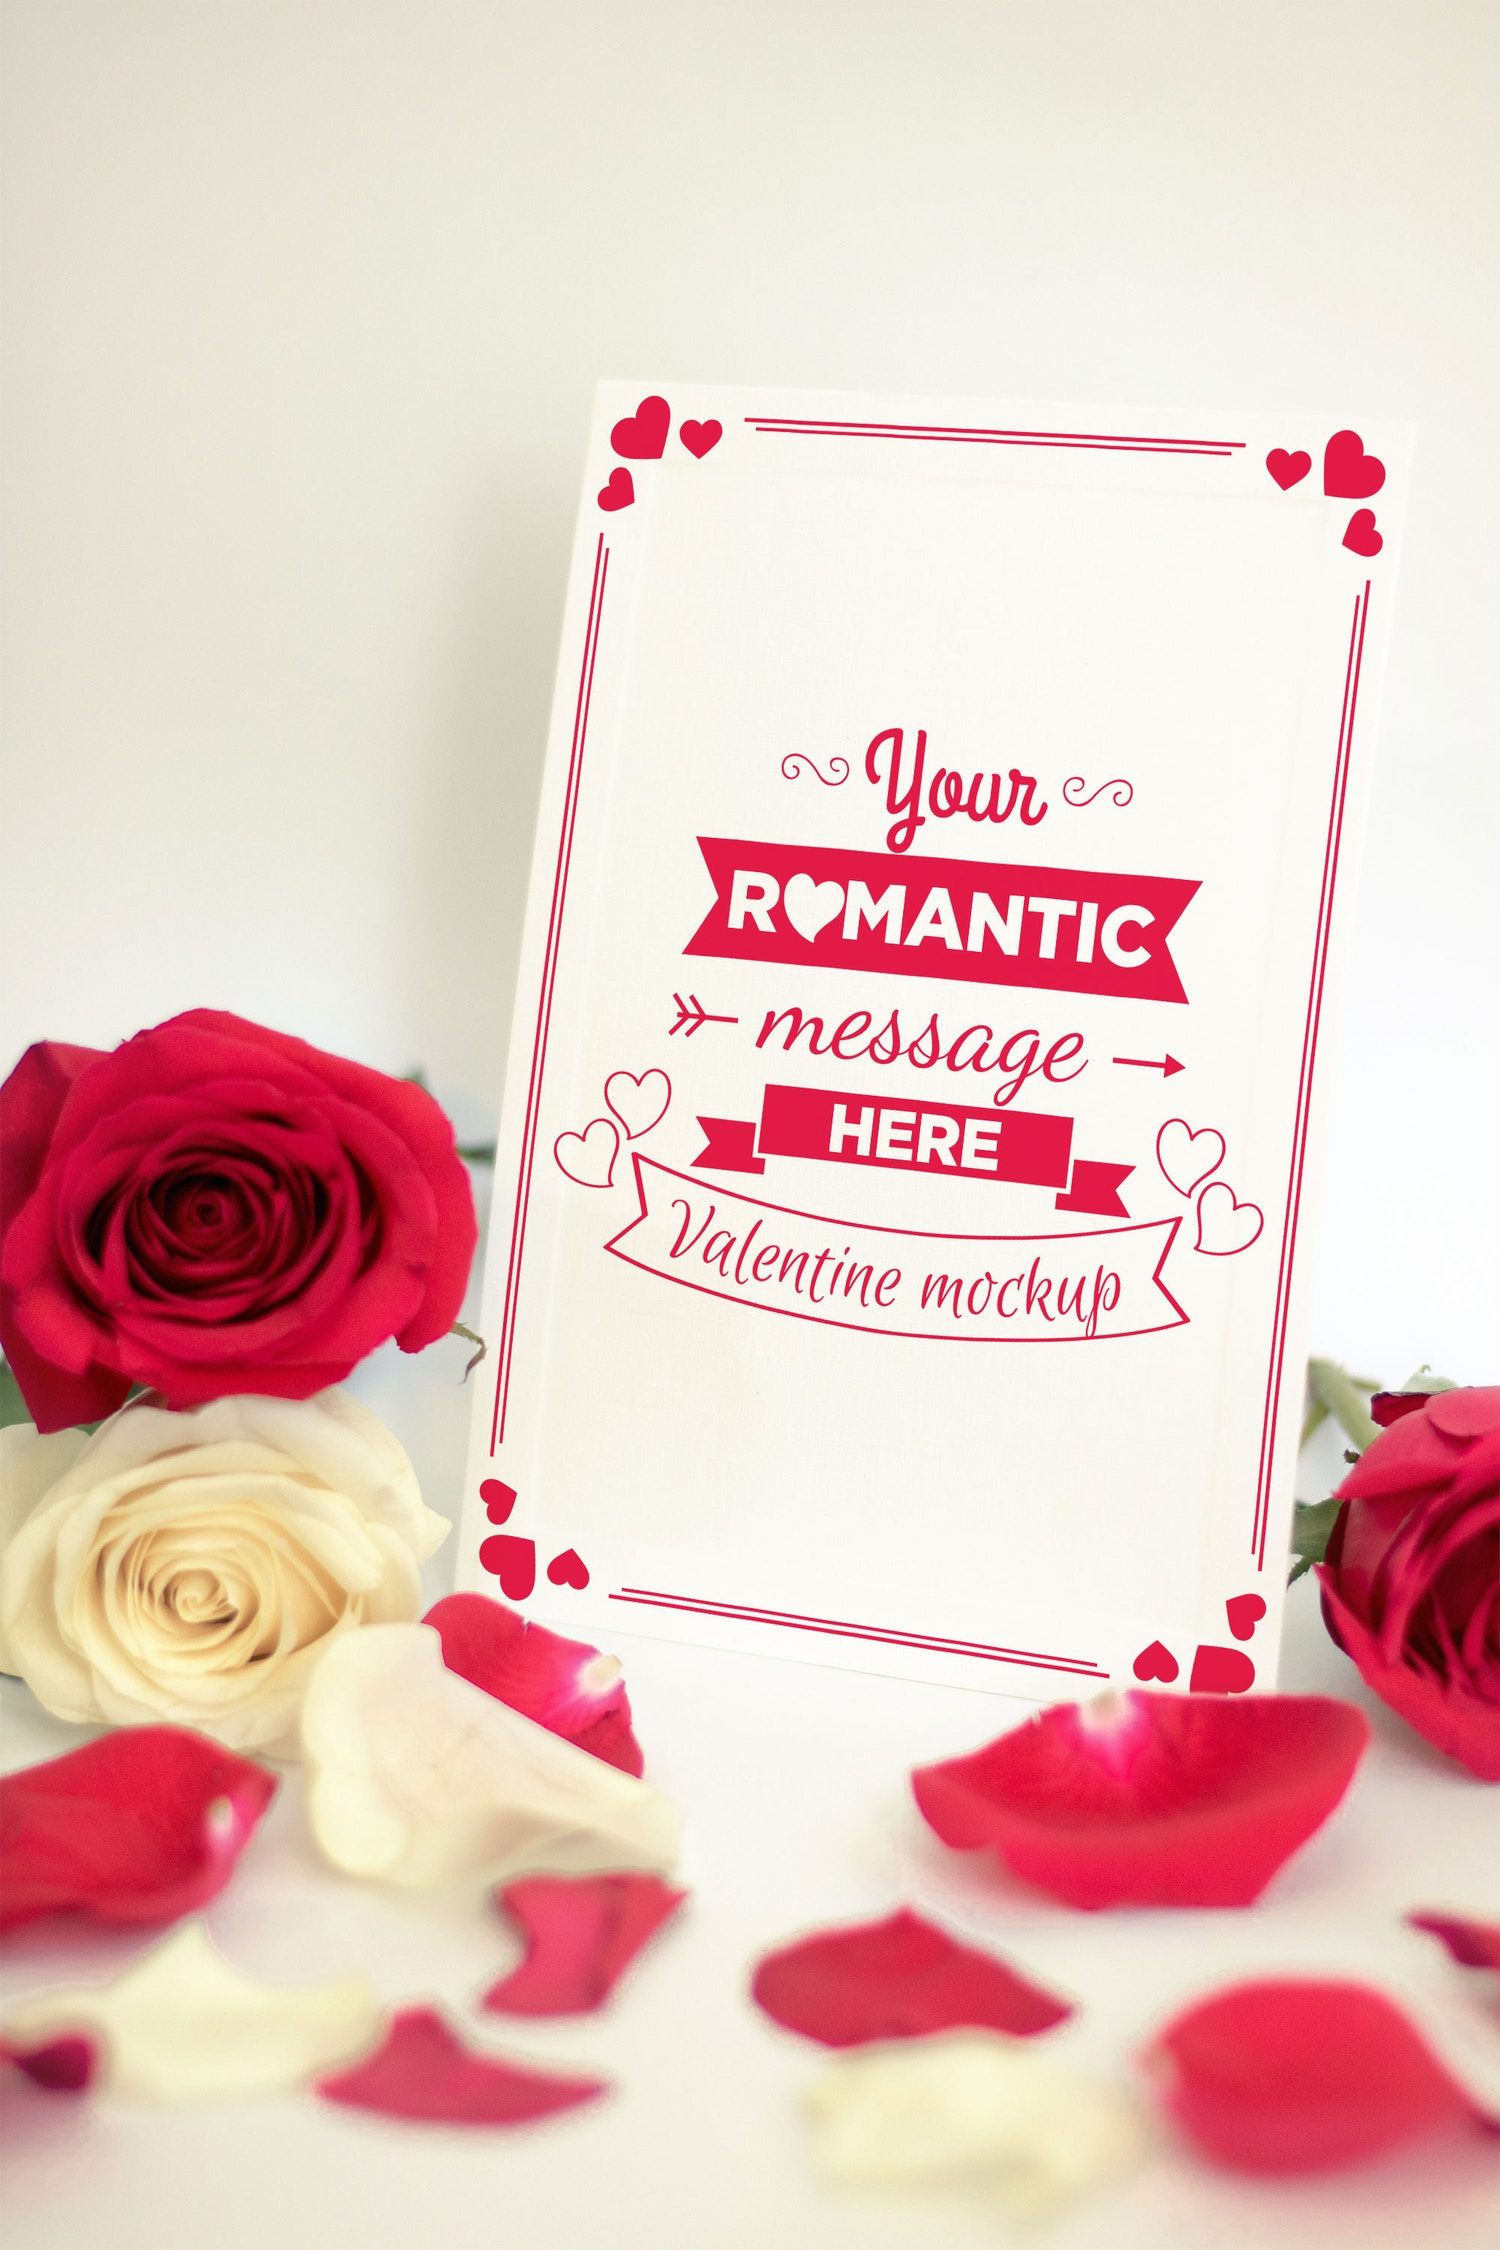 Valentine Card Mockup 06 (1) by Eru  on Original Mockups